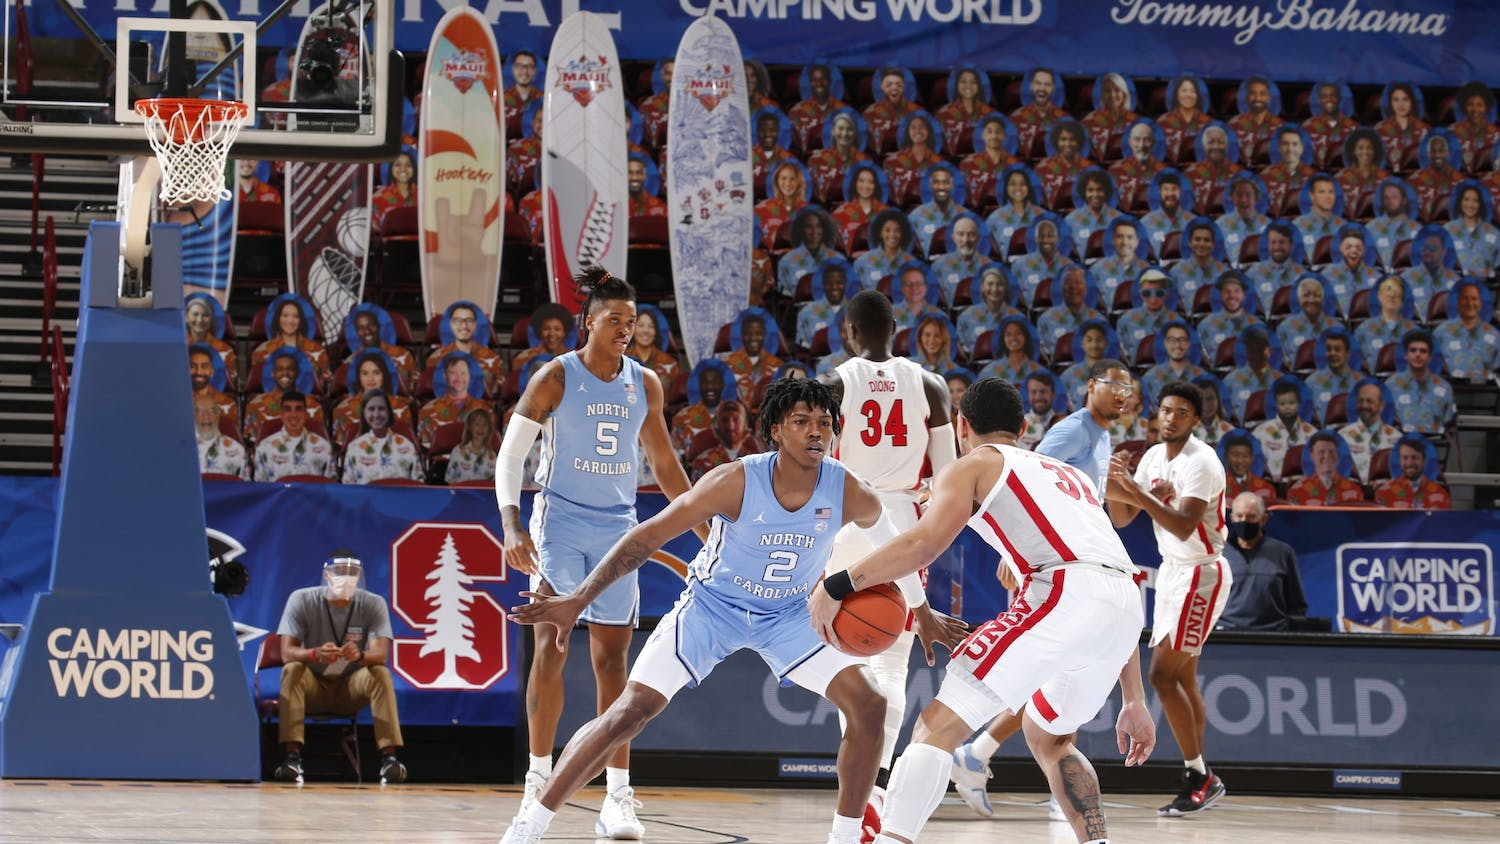 UNC's men's basketball team faced off against UNLV in the first round of the Maui Invitational Tournament in Asheville, N.C. UNC beat UNLV 78-51. Photo courtesy of Brian Spurlock/Camping World Maui Invitational.